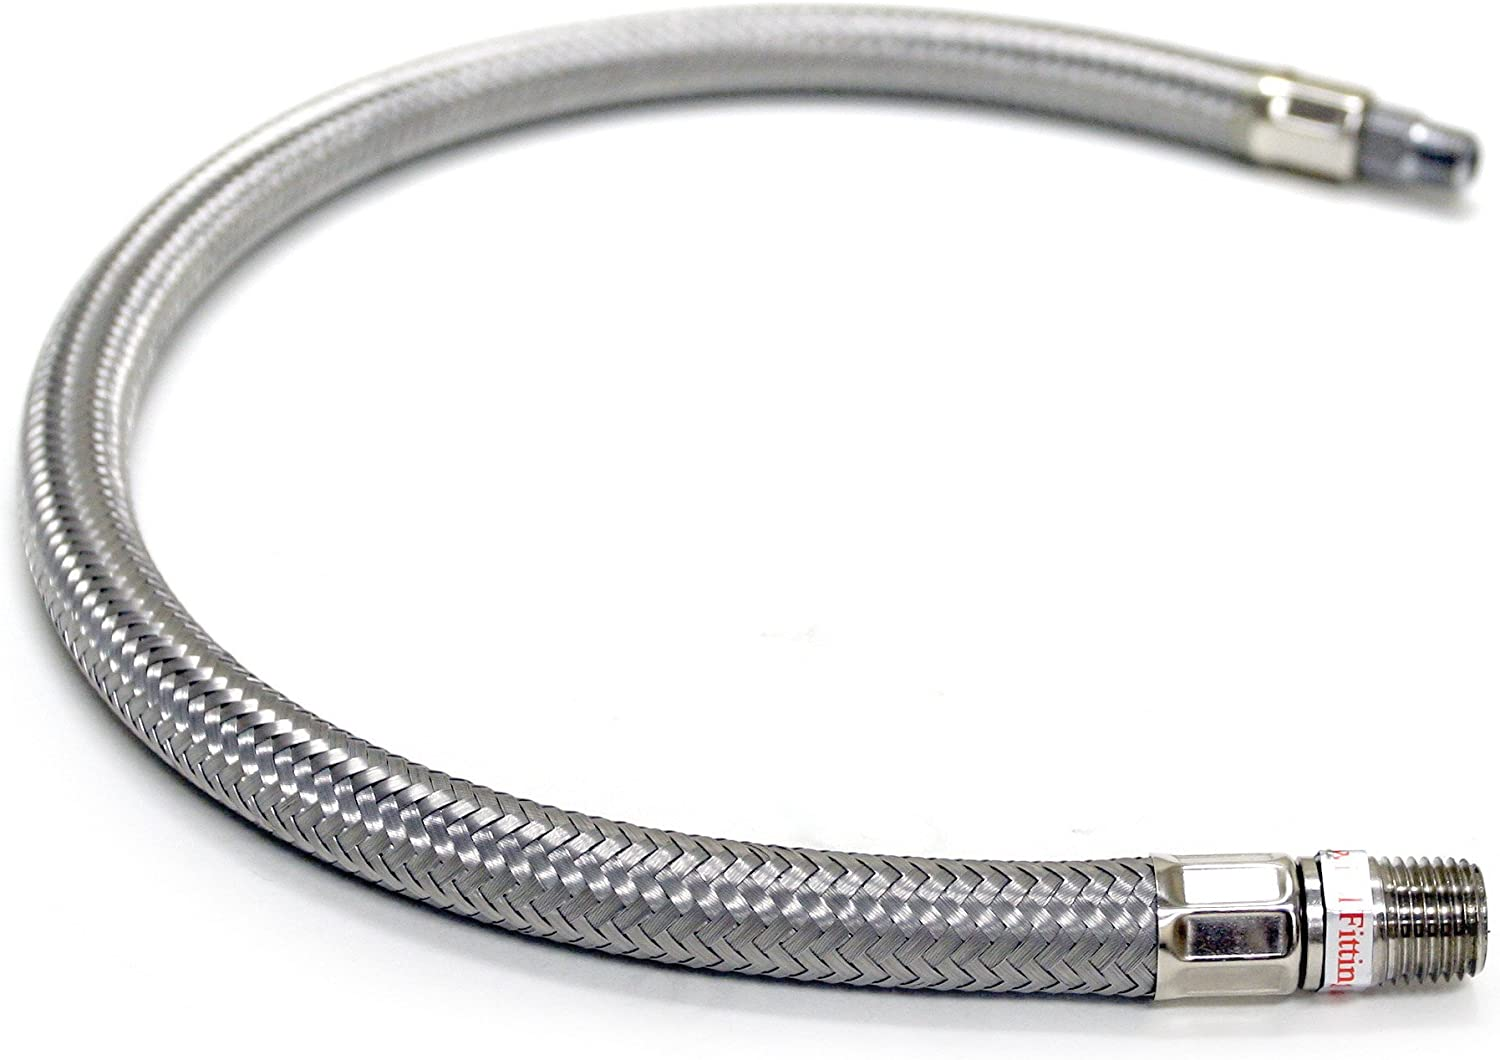 VIAIR 92804 18 Stainless Steel Braided Leader Hose without Check Valve